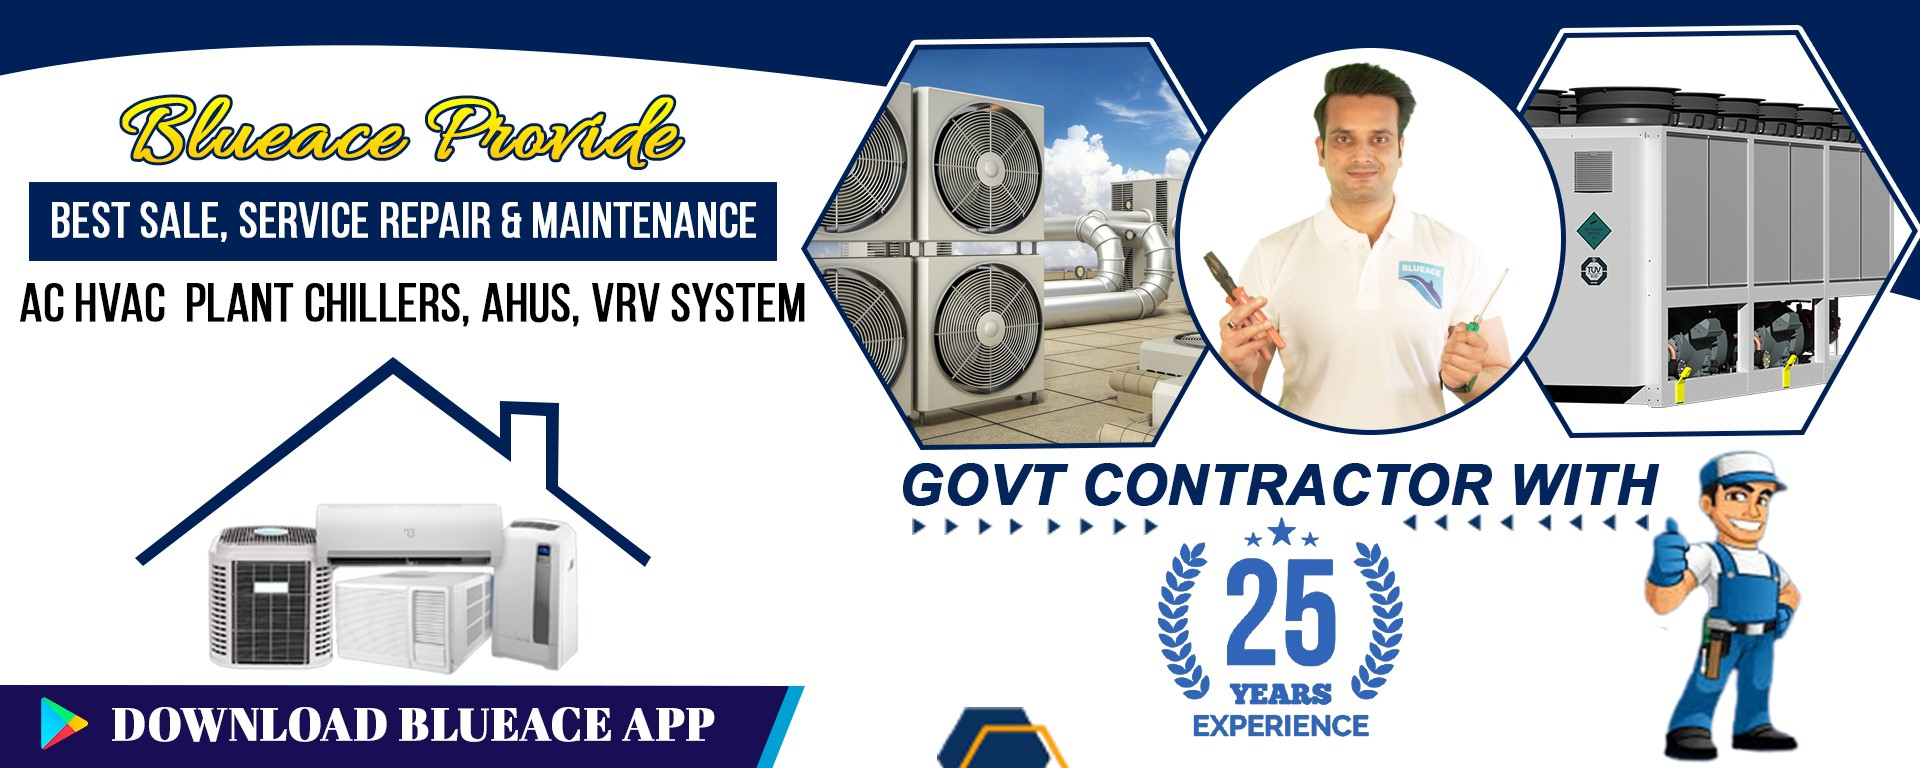 Blueace Commecial Air Conditioners